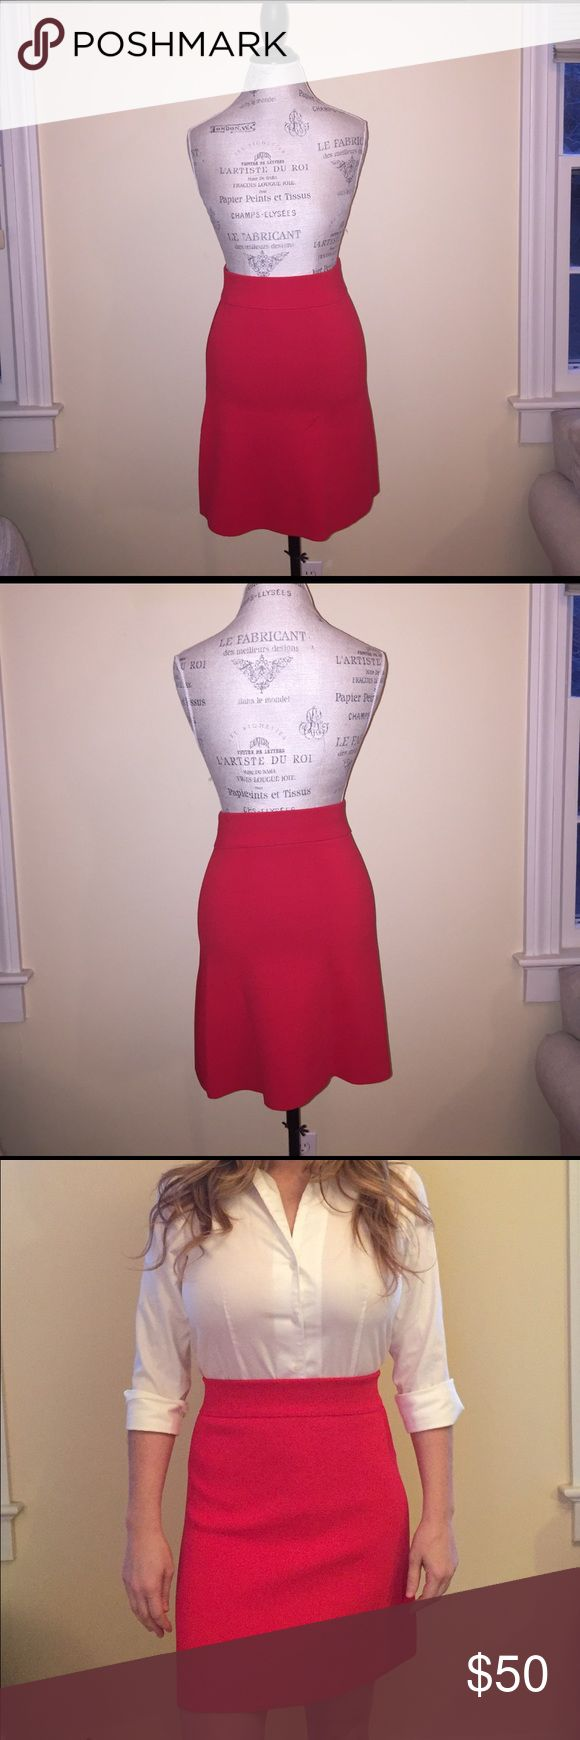 Versatile red flirty skirt High waisted A-line skirt Reiss Skirts Midi